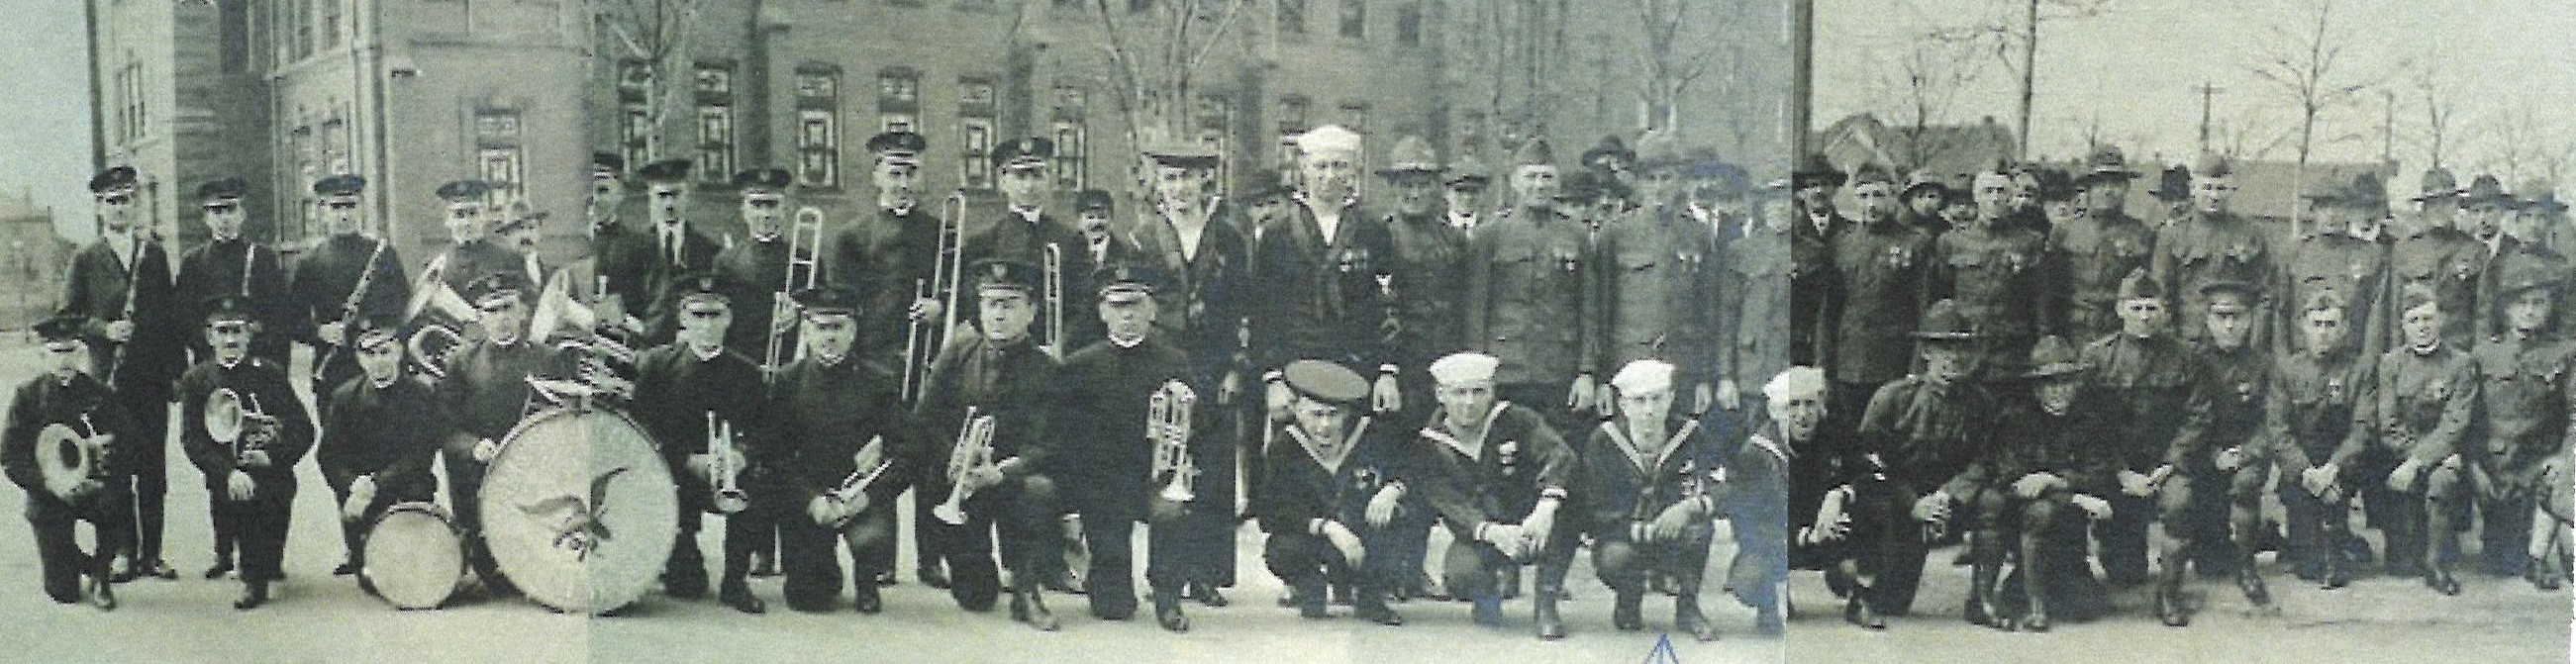 South Bend IN returning vets c. 1921